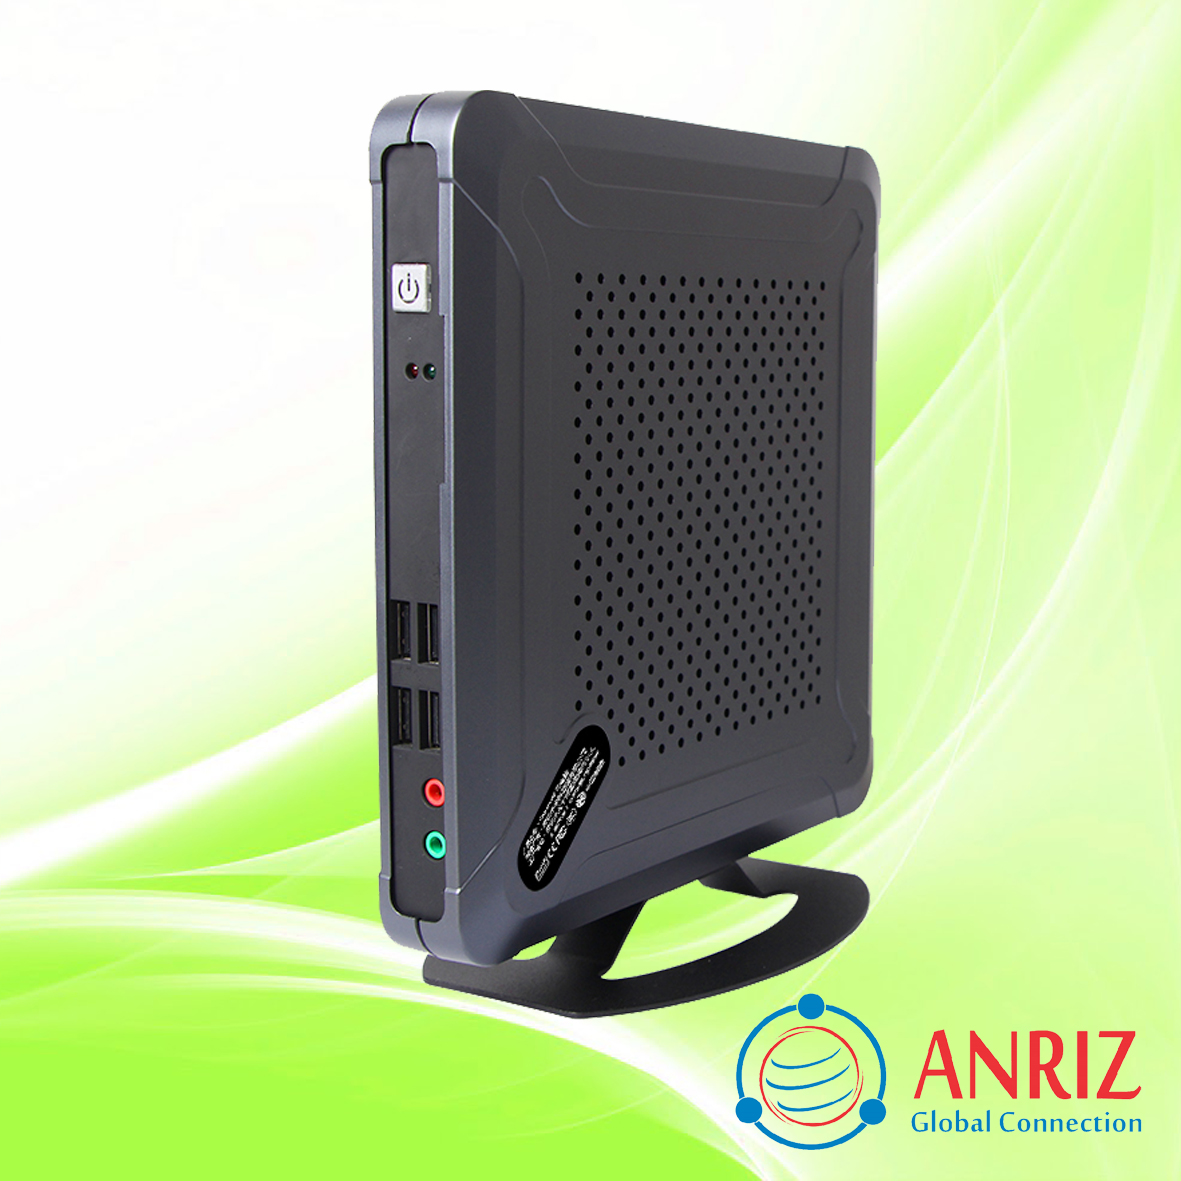 Mini PC AGC 3700 Samping Depan